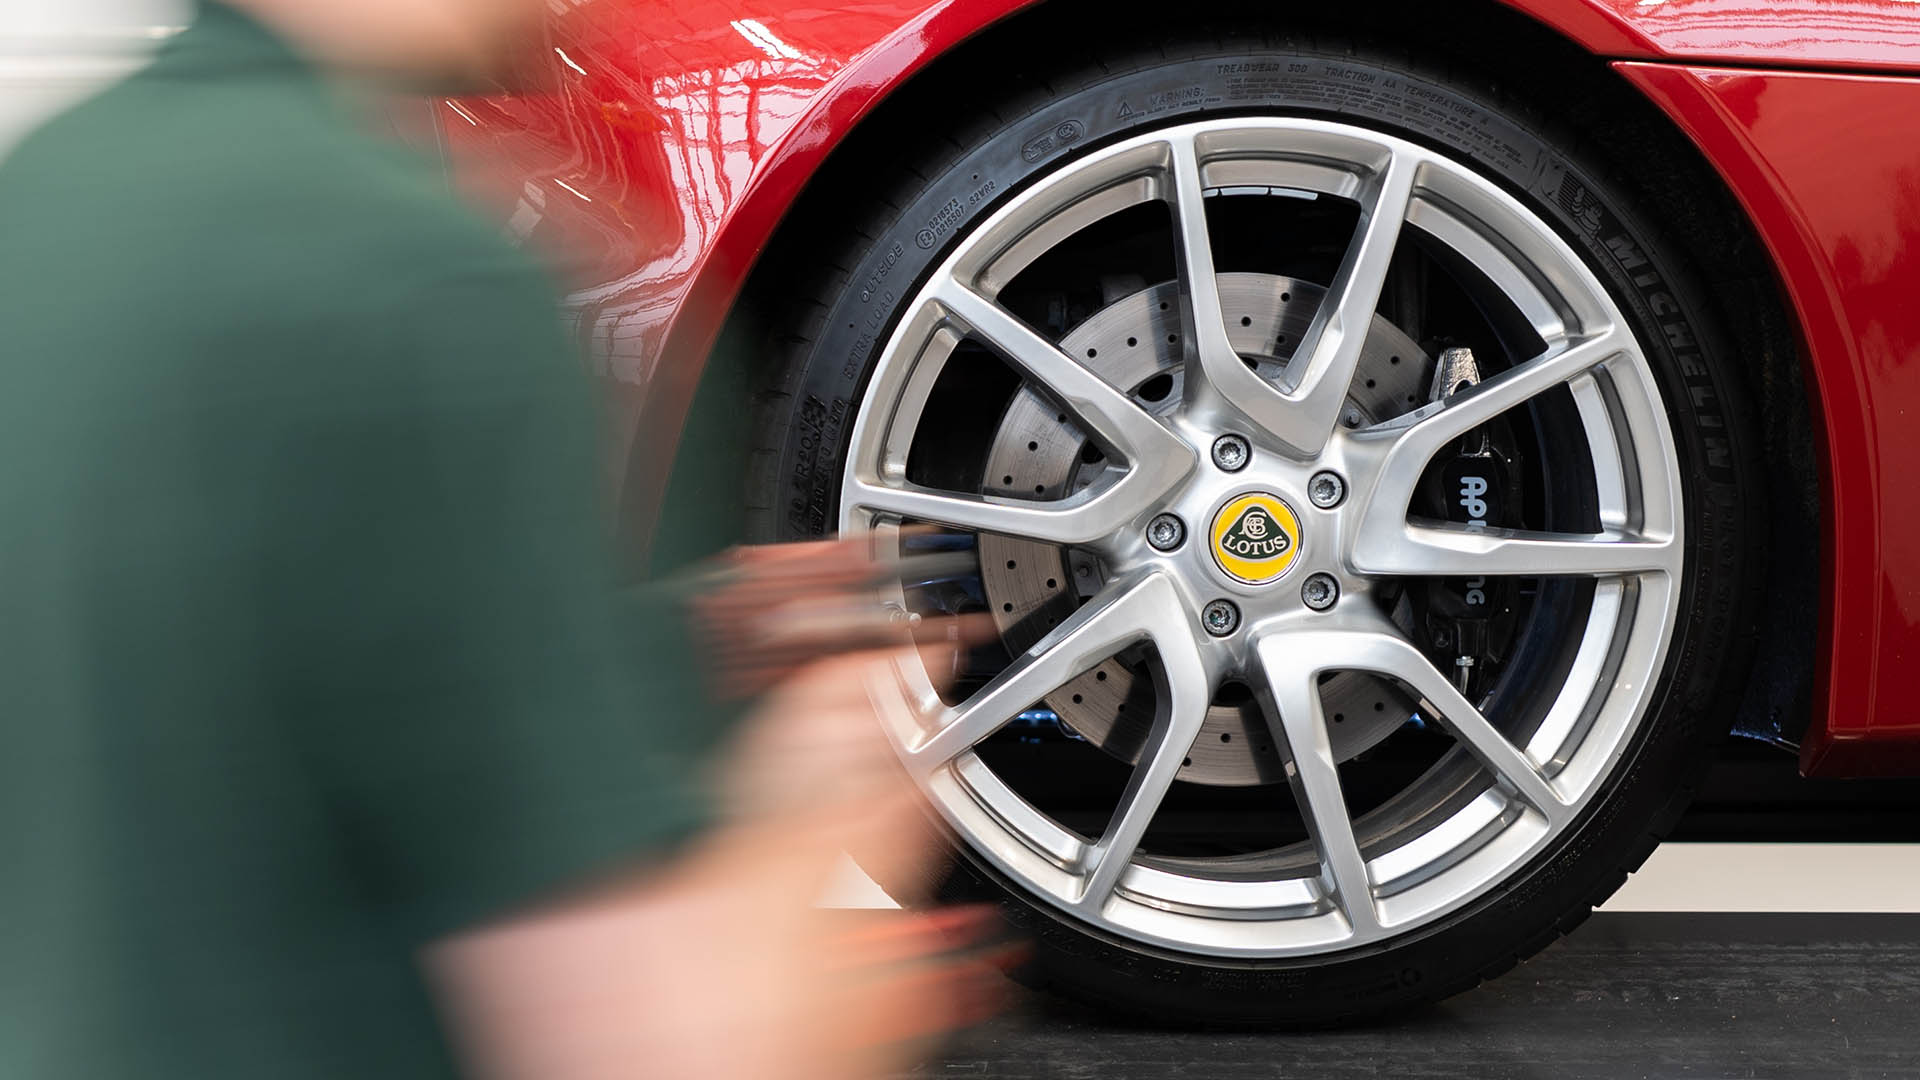 Cost of servicing Lotus Elise halved